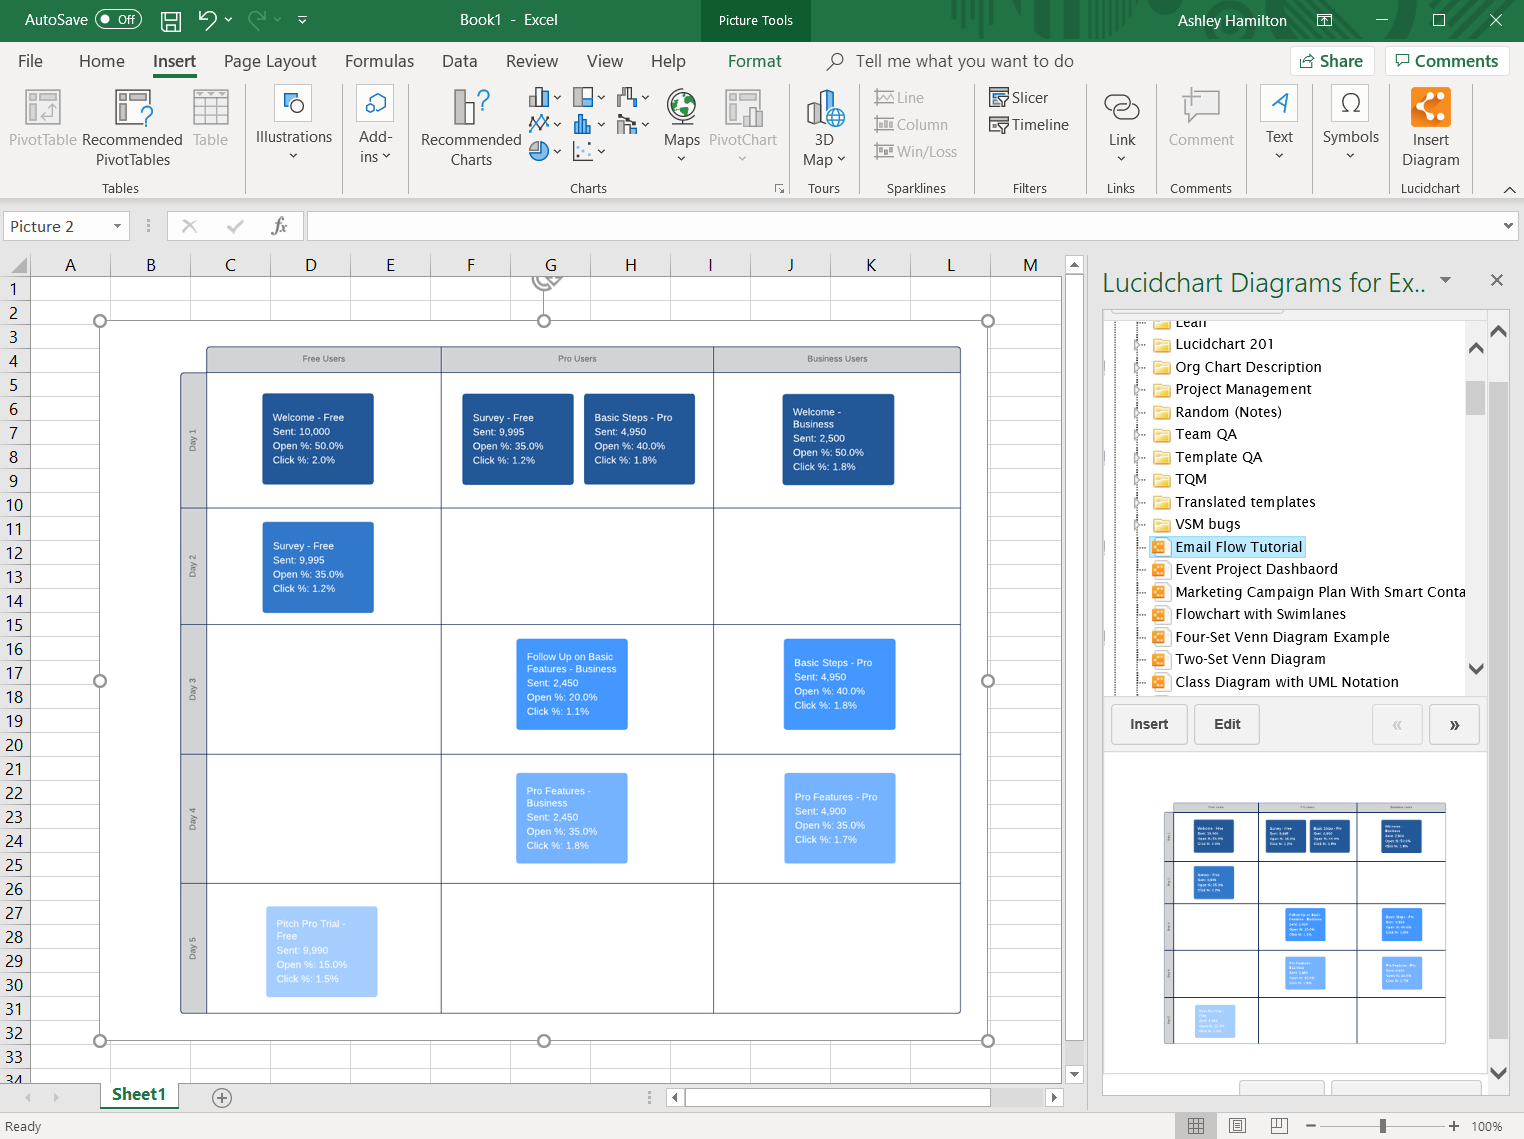 Integraciones con Microsoft Office